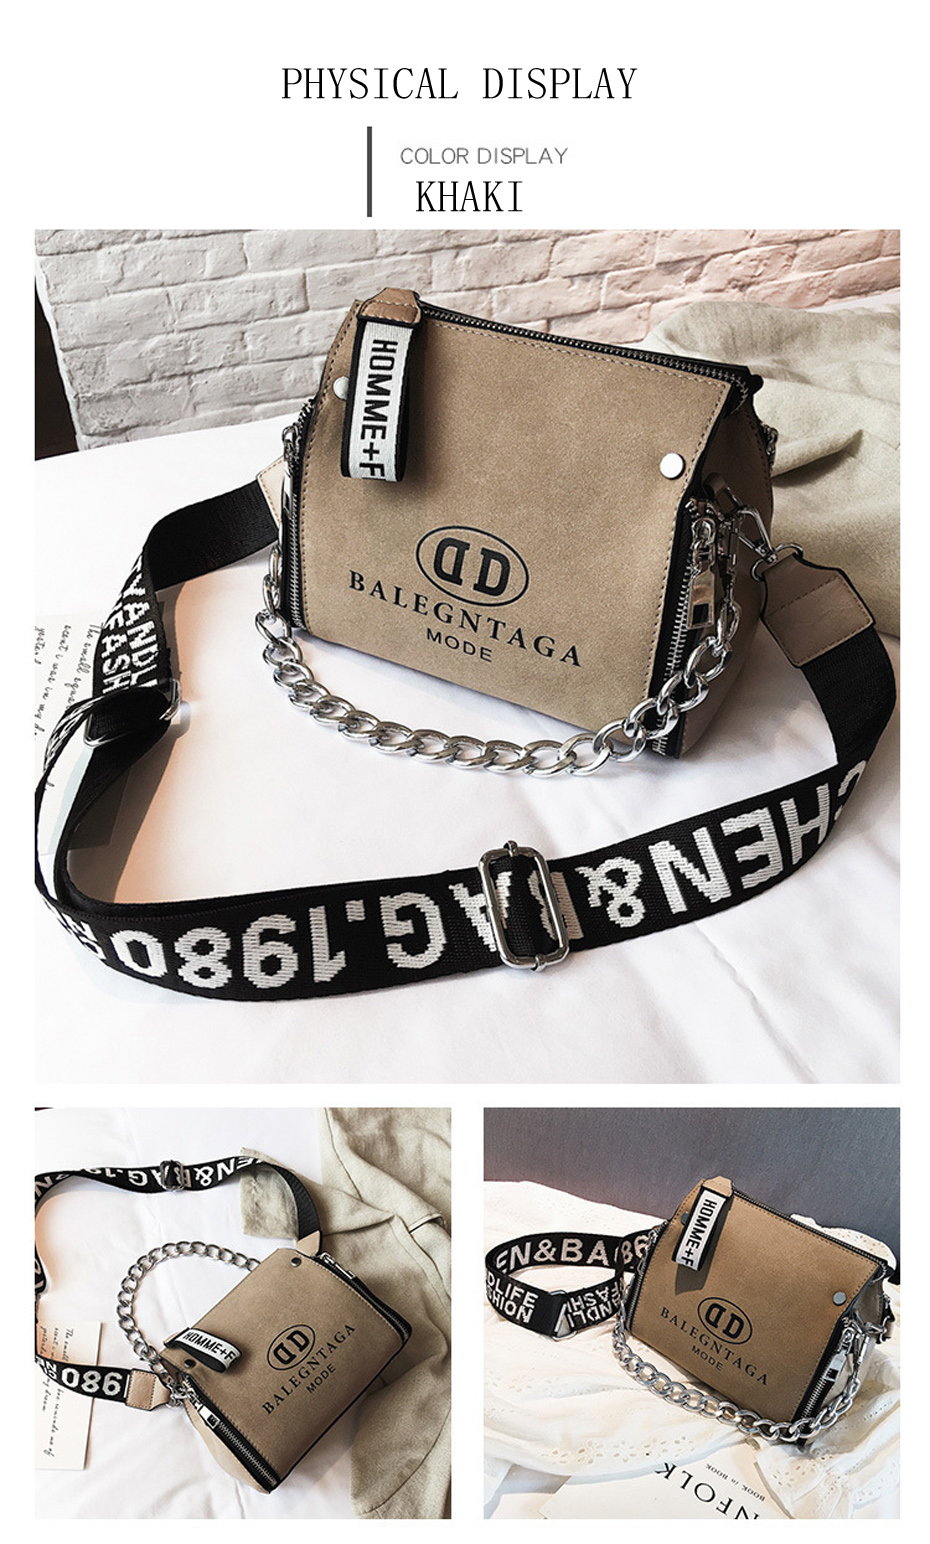 HTB1aR9vJCzqK1RjSZFjq6zlCFXaI - Women's Leather Messenger Bag | Wide Strap Chains